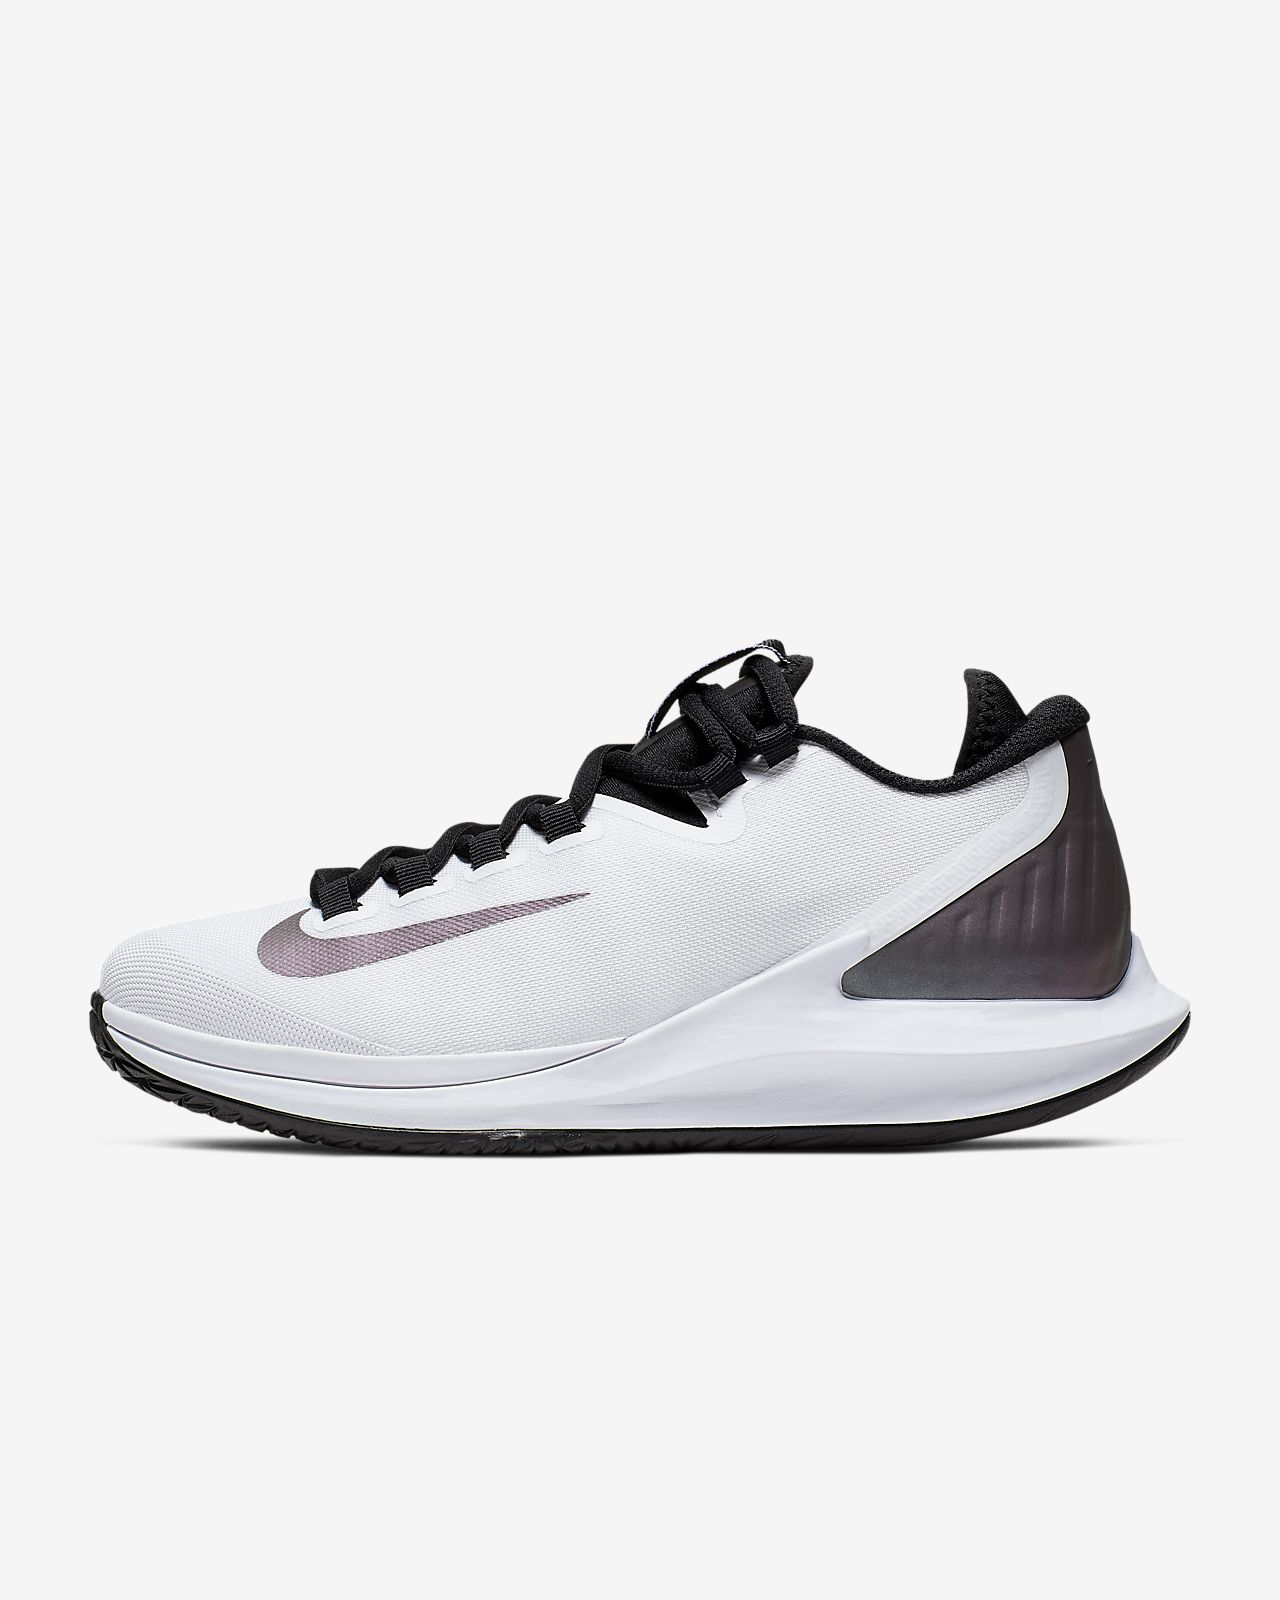 NikeCourt Air Zoom Zero Women's Tennis Shoe